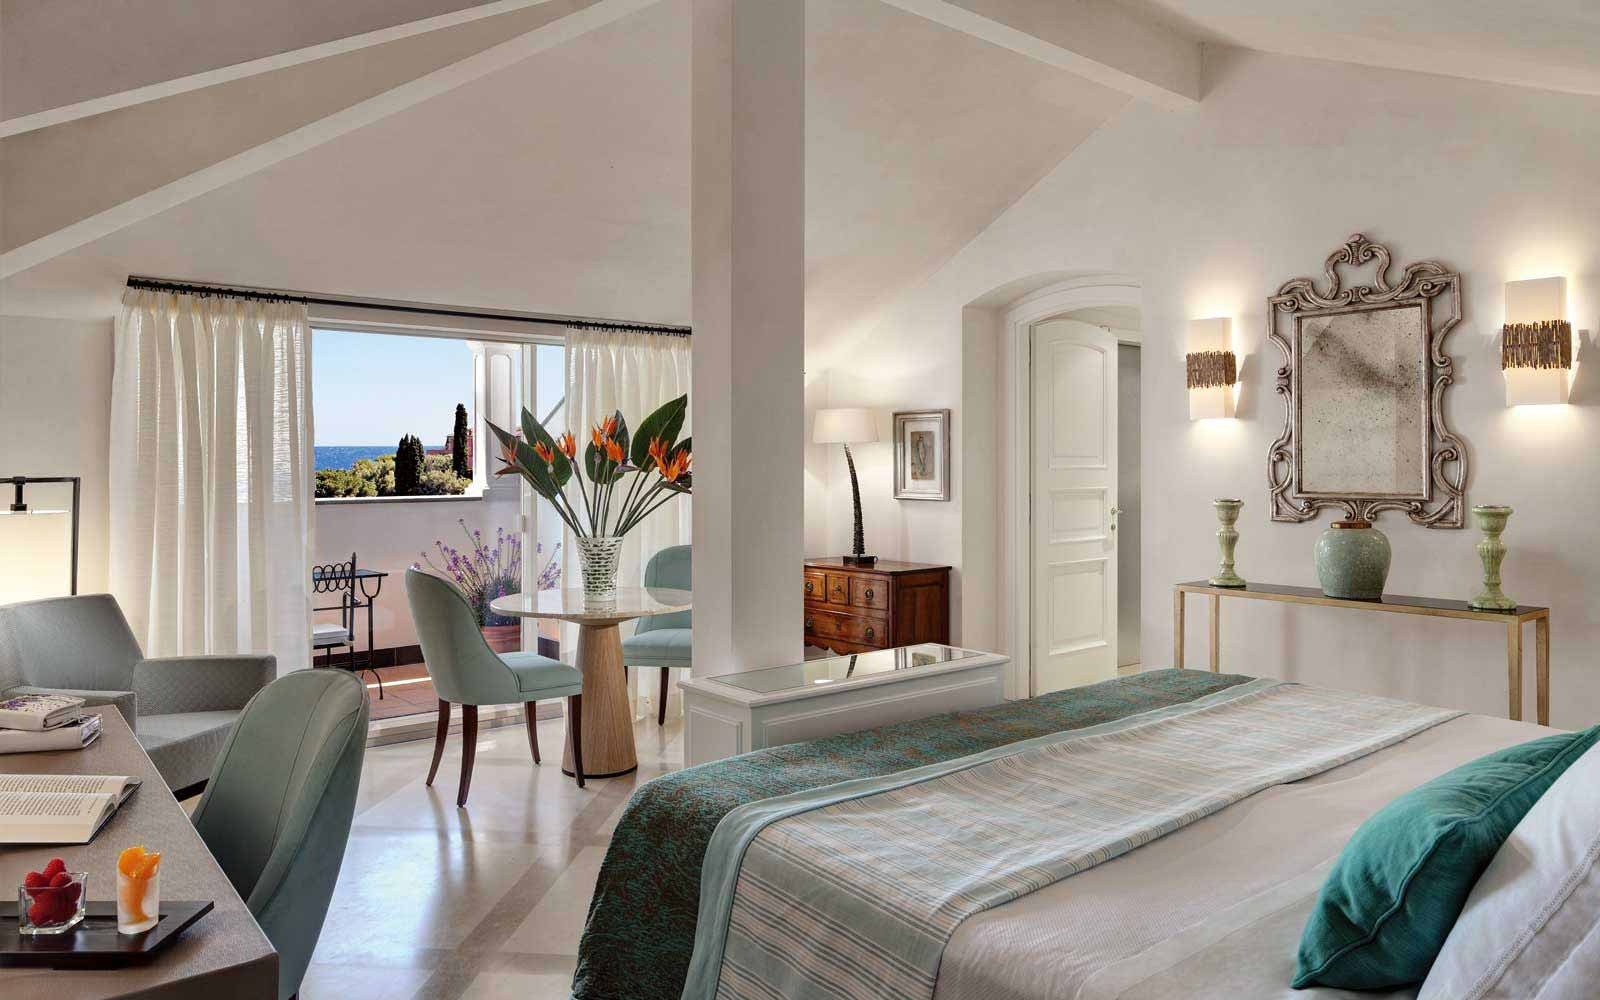 Exclusive Suite at Belmond Hotel Splendido & Splendido Mare